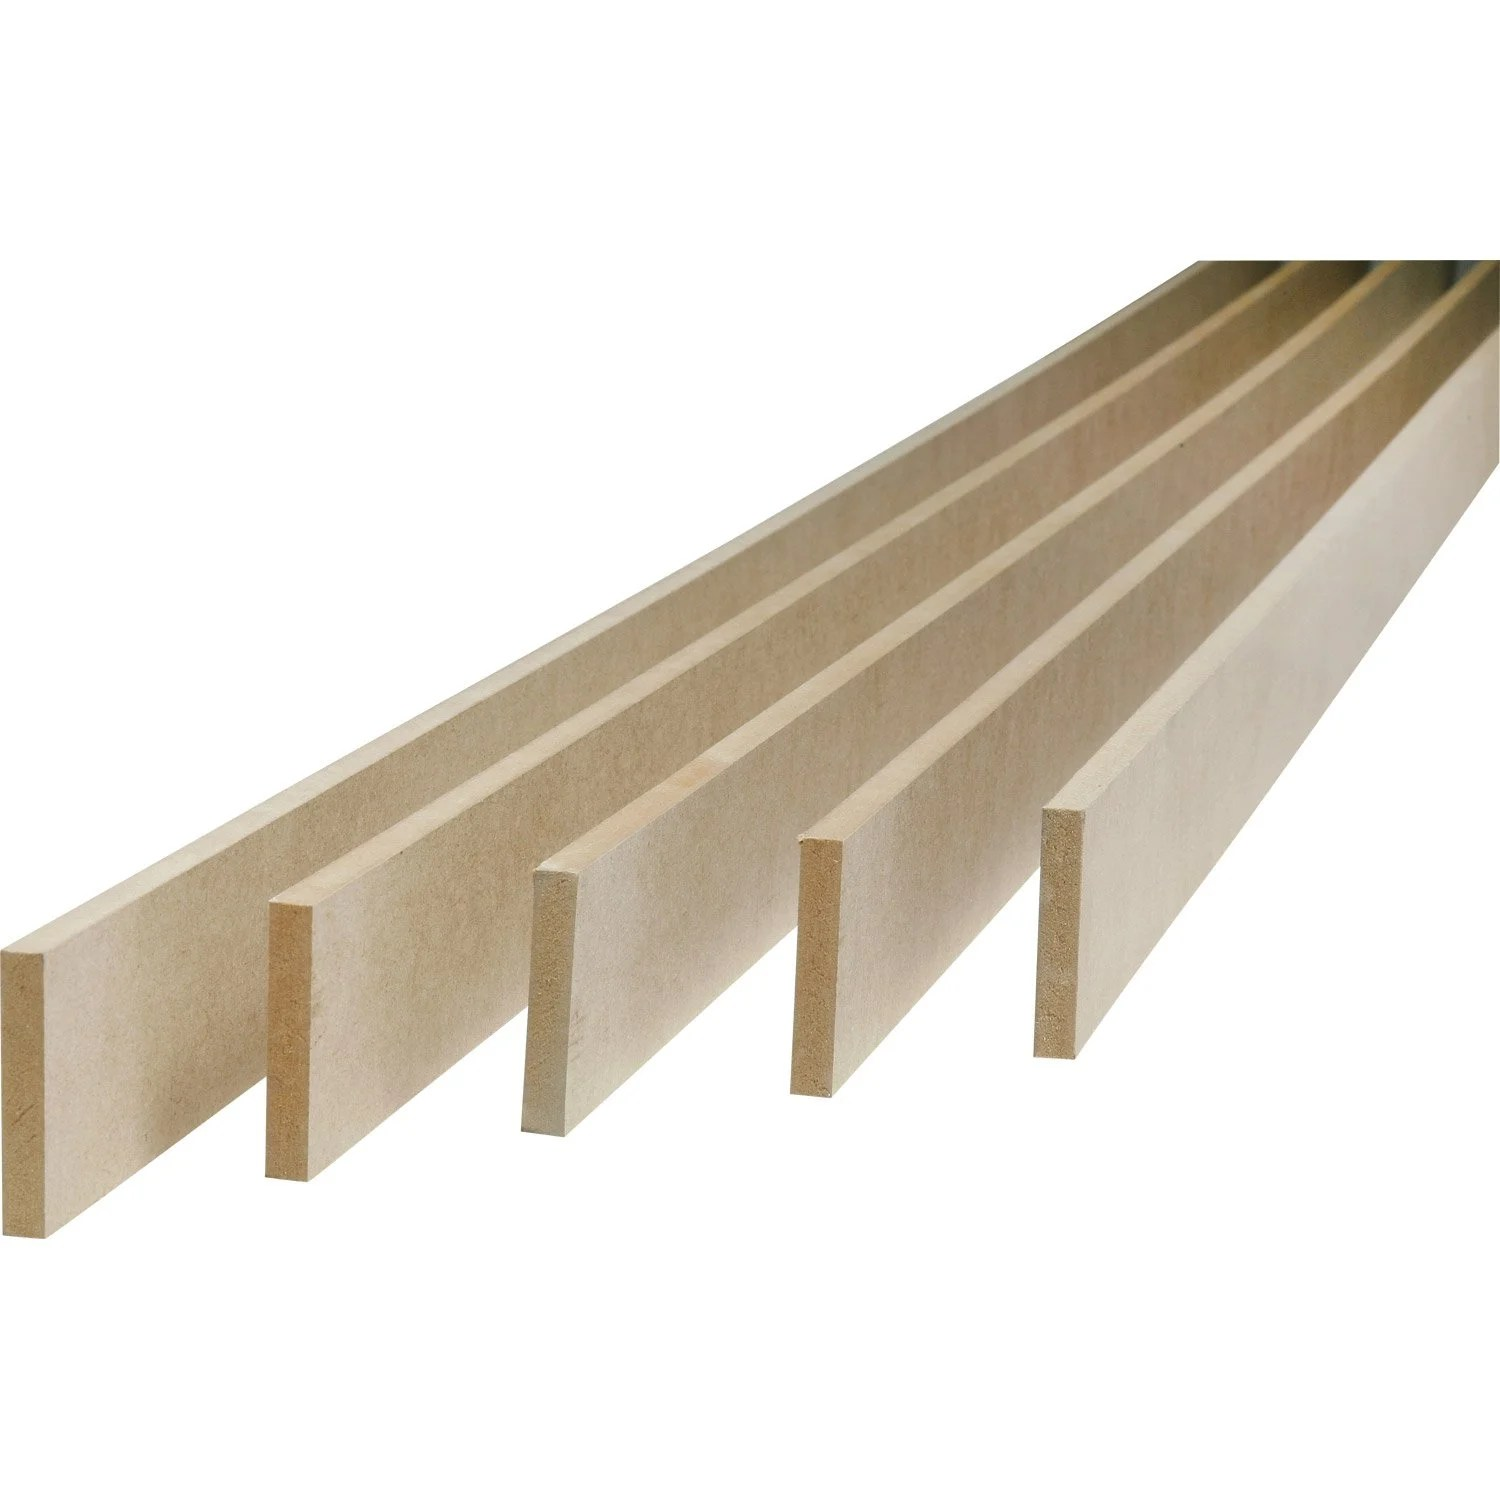 Plinthe En Bois Leroy Merlin Lot De 5 Plinthes Médium Mdf Réversibles 9 X 100 Mm L